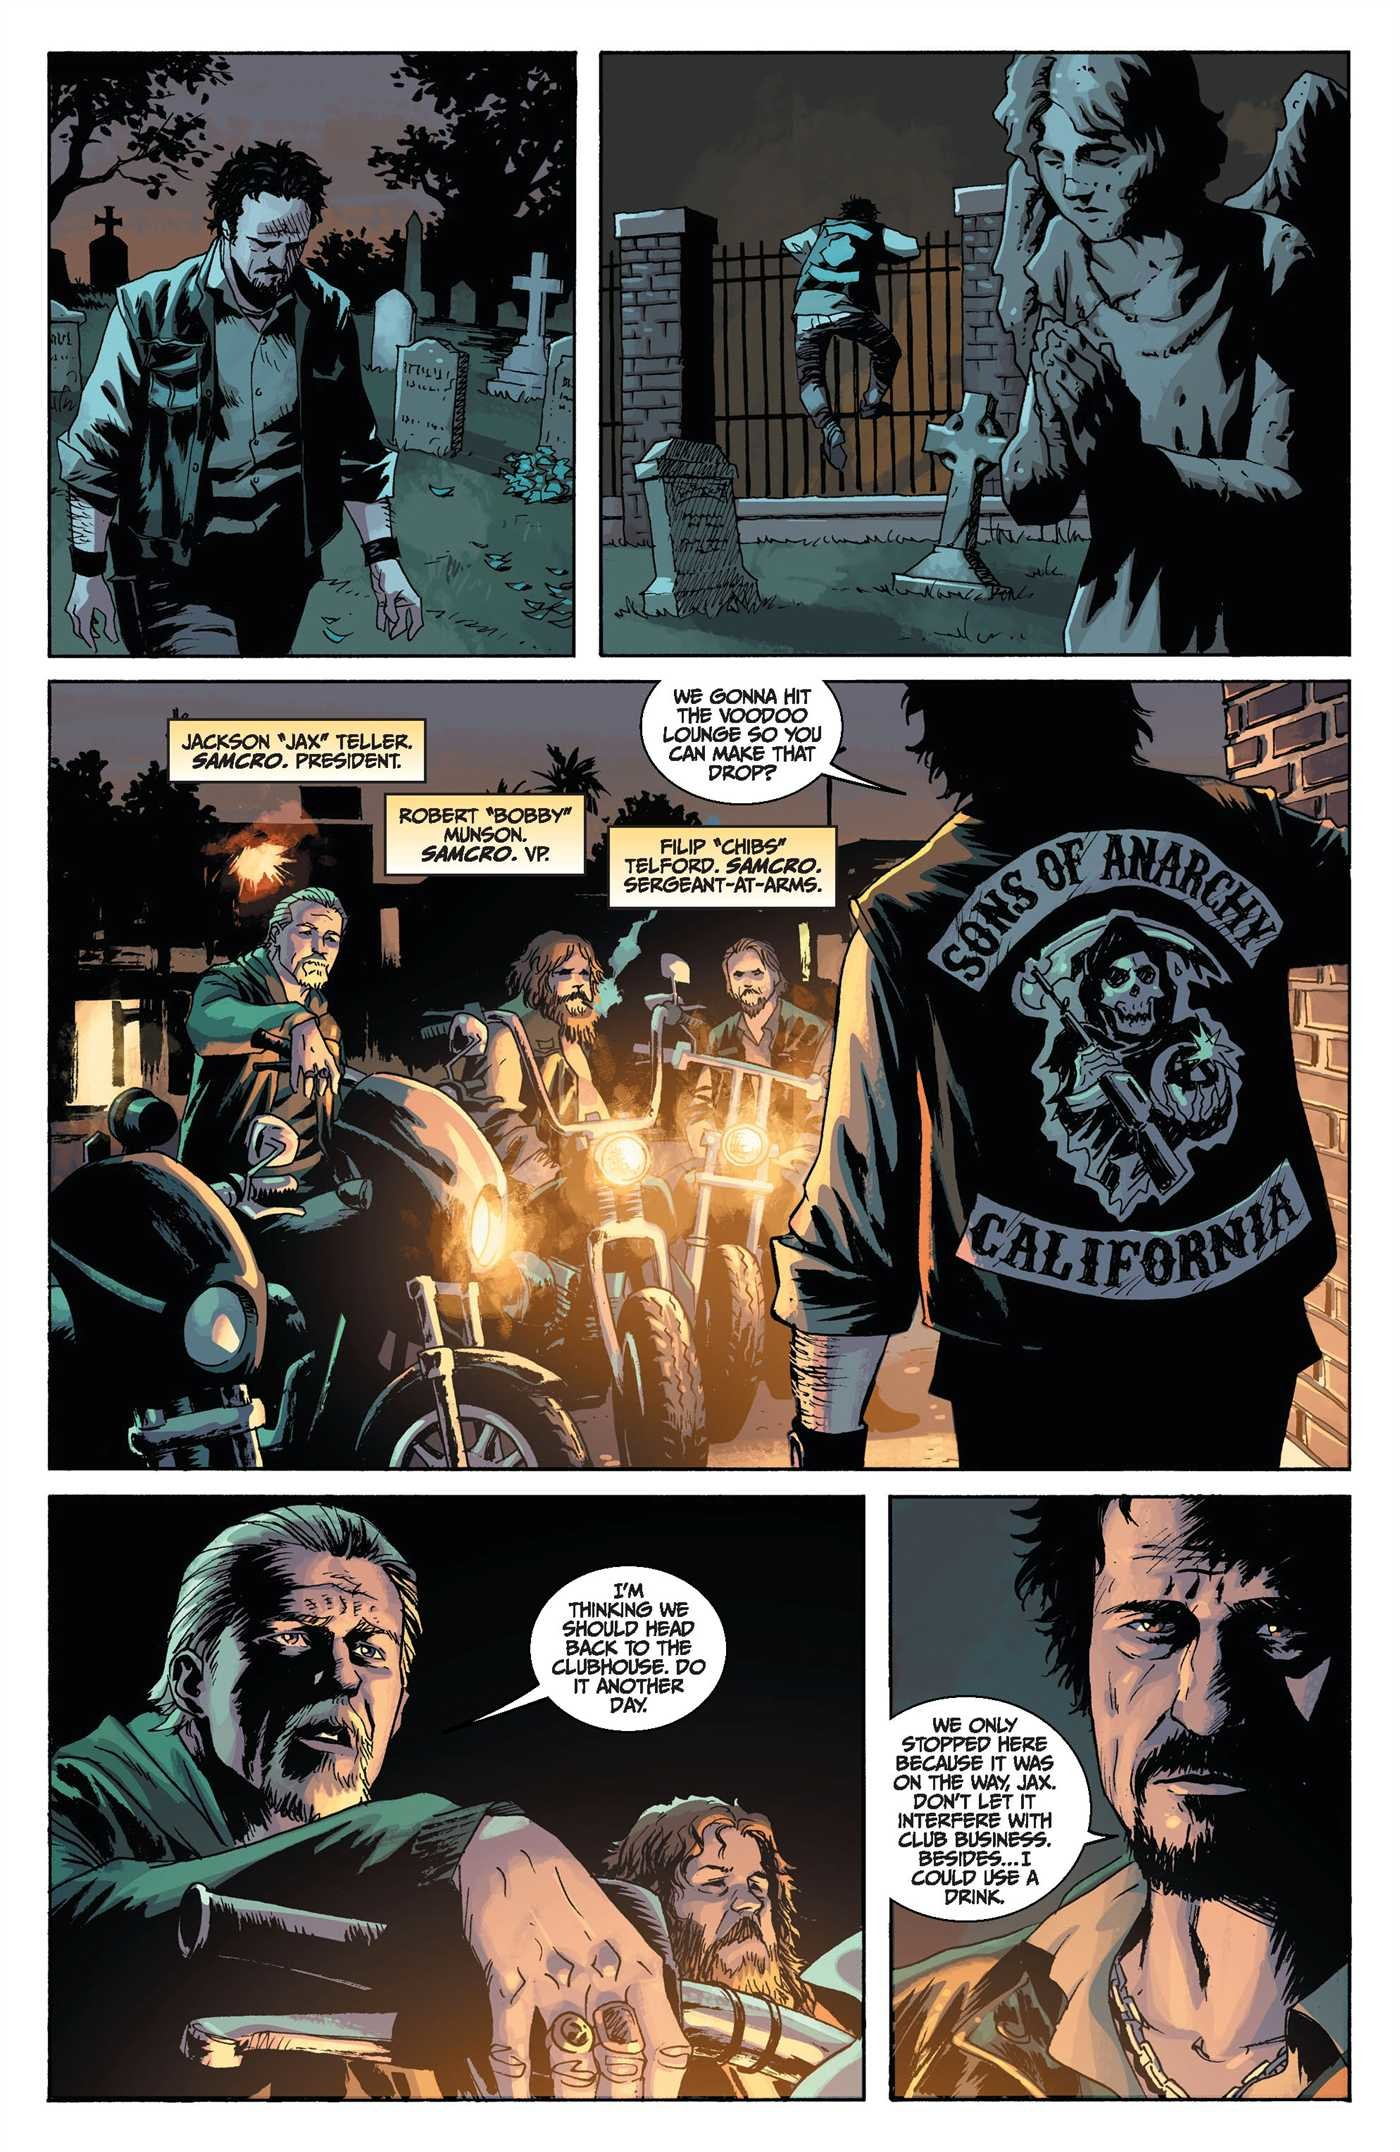 Sons-of-anarchy-vol-1-9781608864027.in05